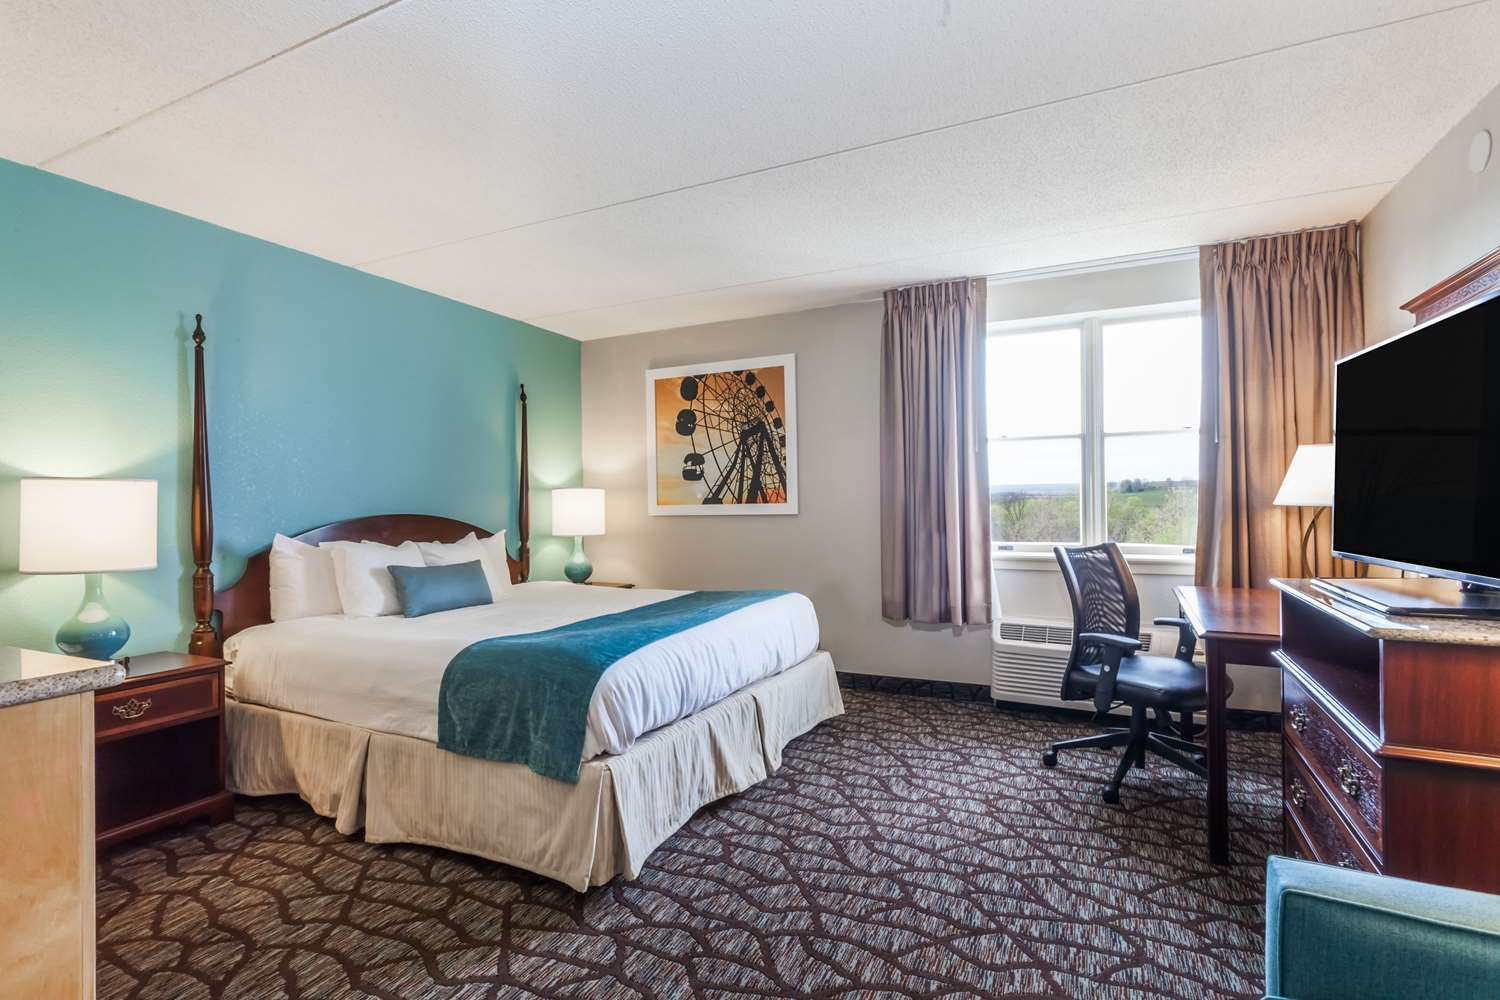 Hershey park gay friendly room reservations